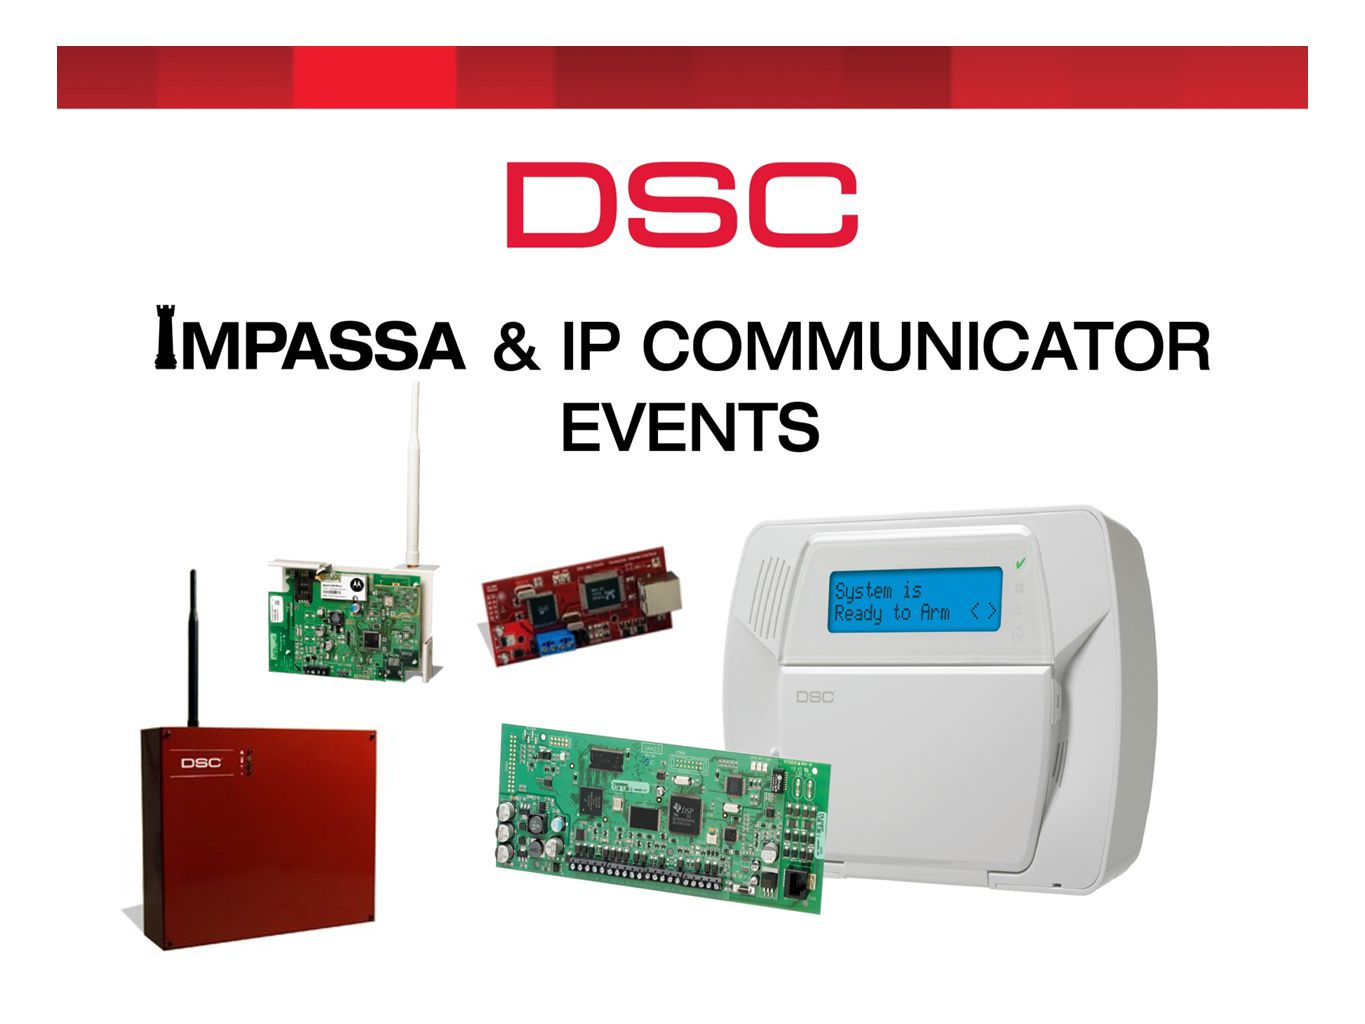 G Welcome To Our Dsc Impassa Ip Communicators Road Show Ppt 5010 Wiring Diagram